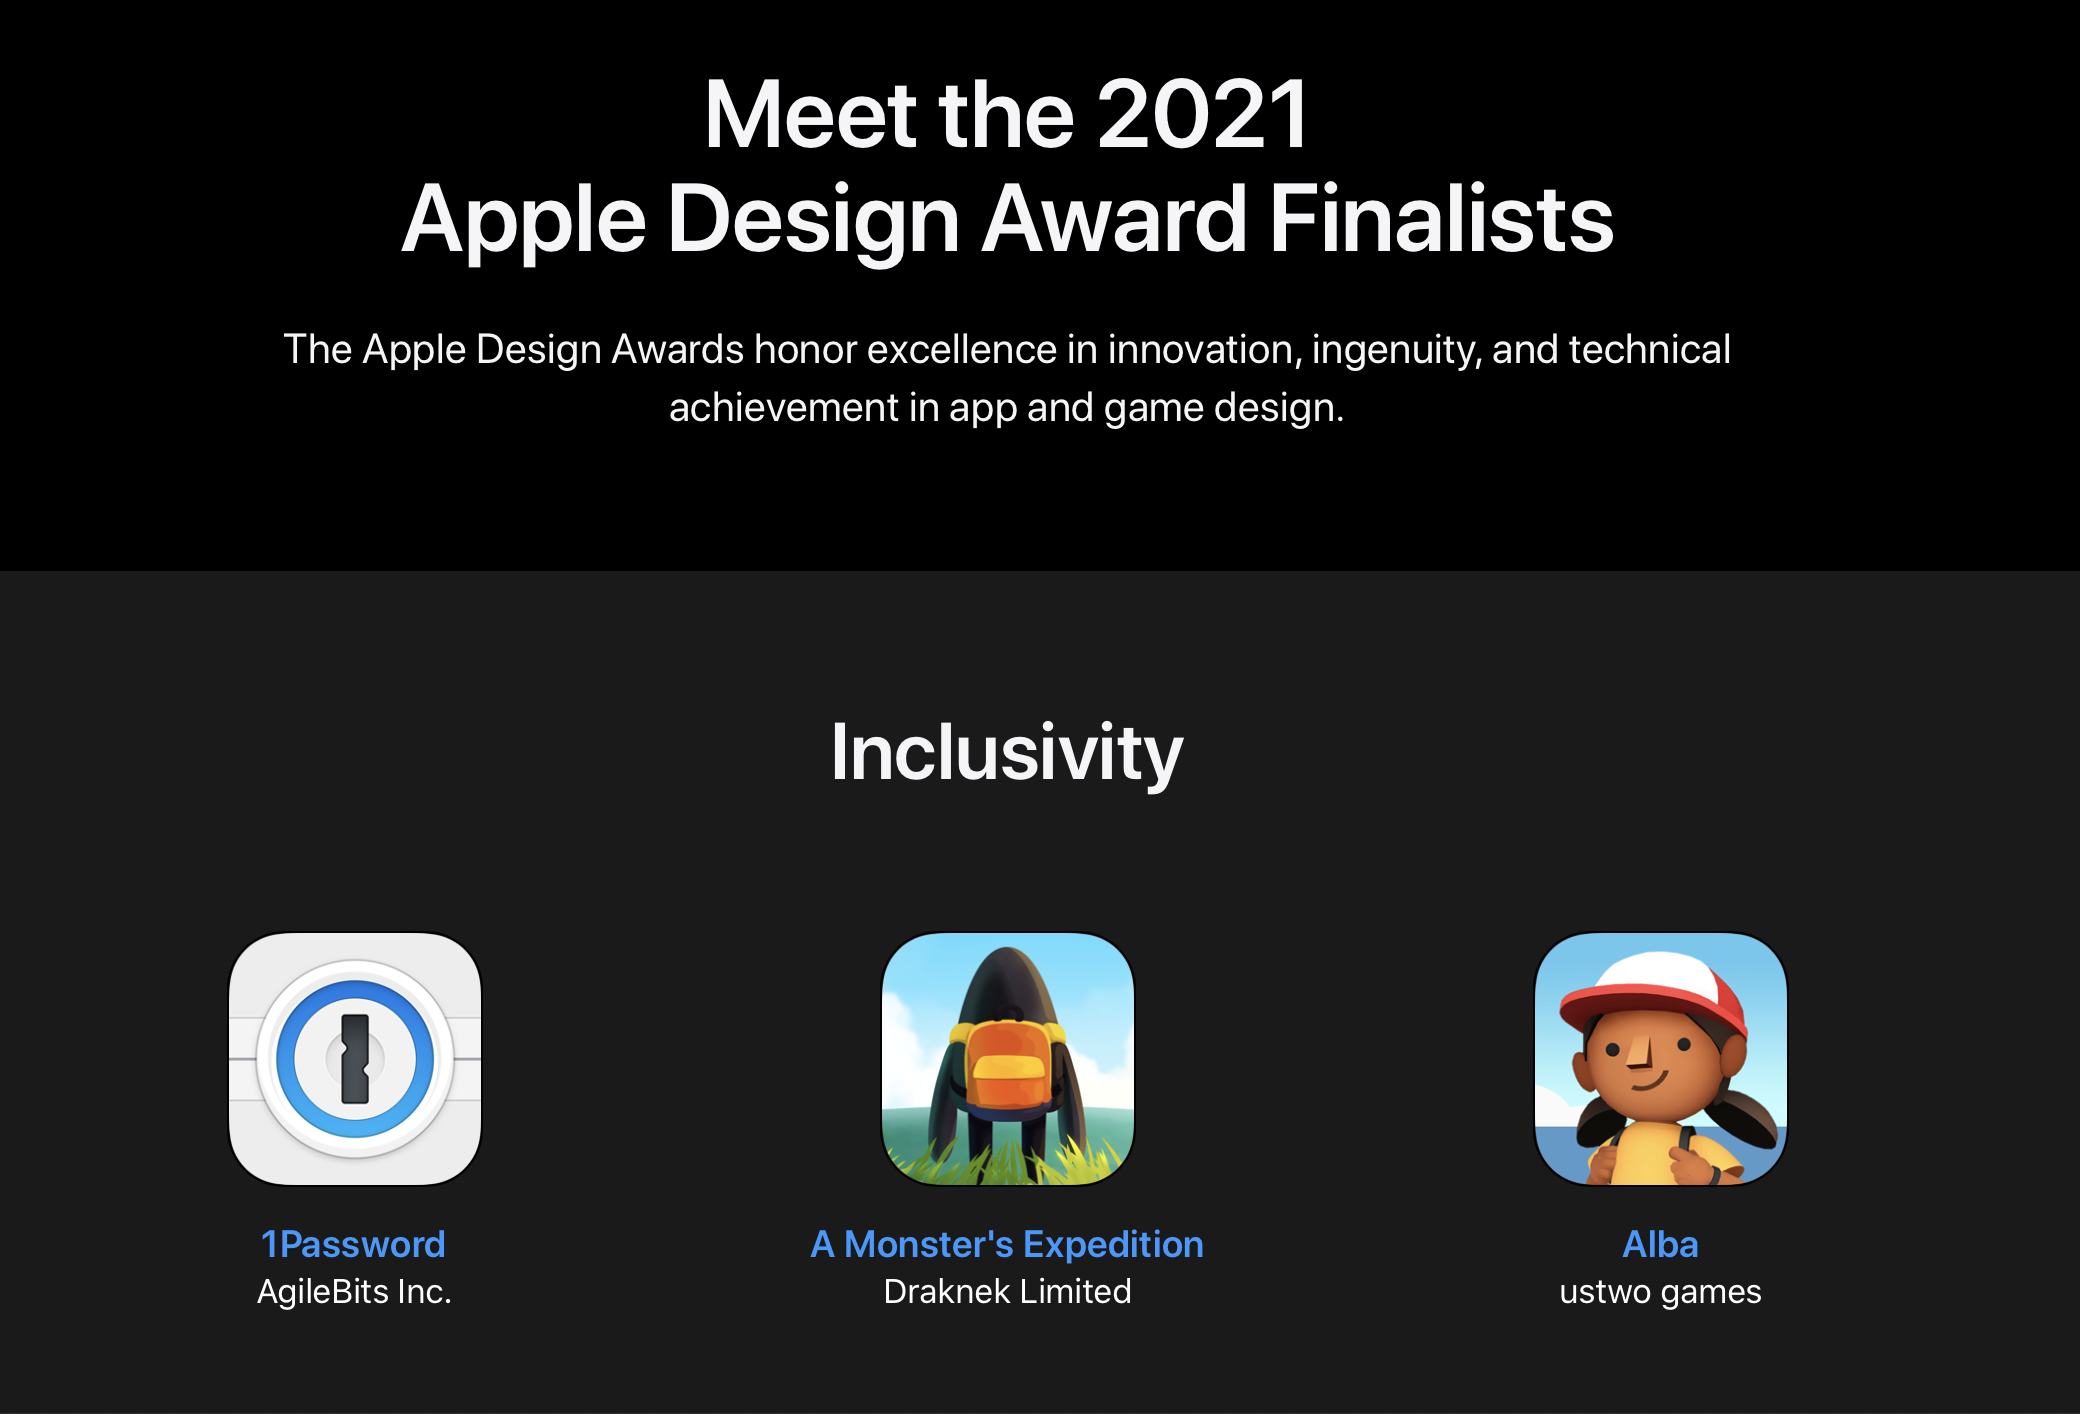 1Password chosen as a Apple Design Award finalist in the category of Inclusivity